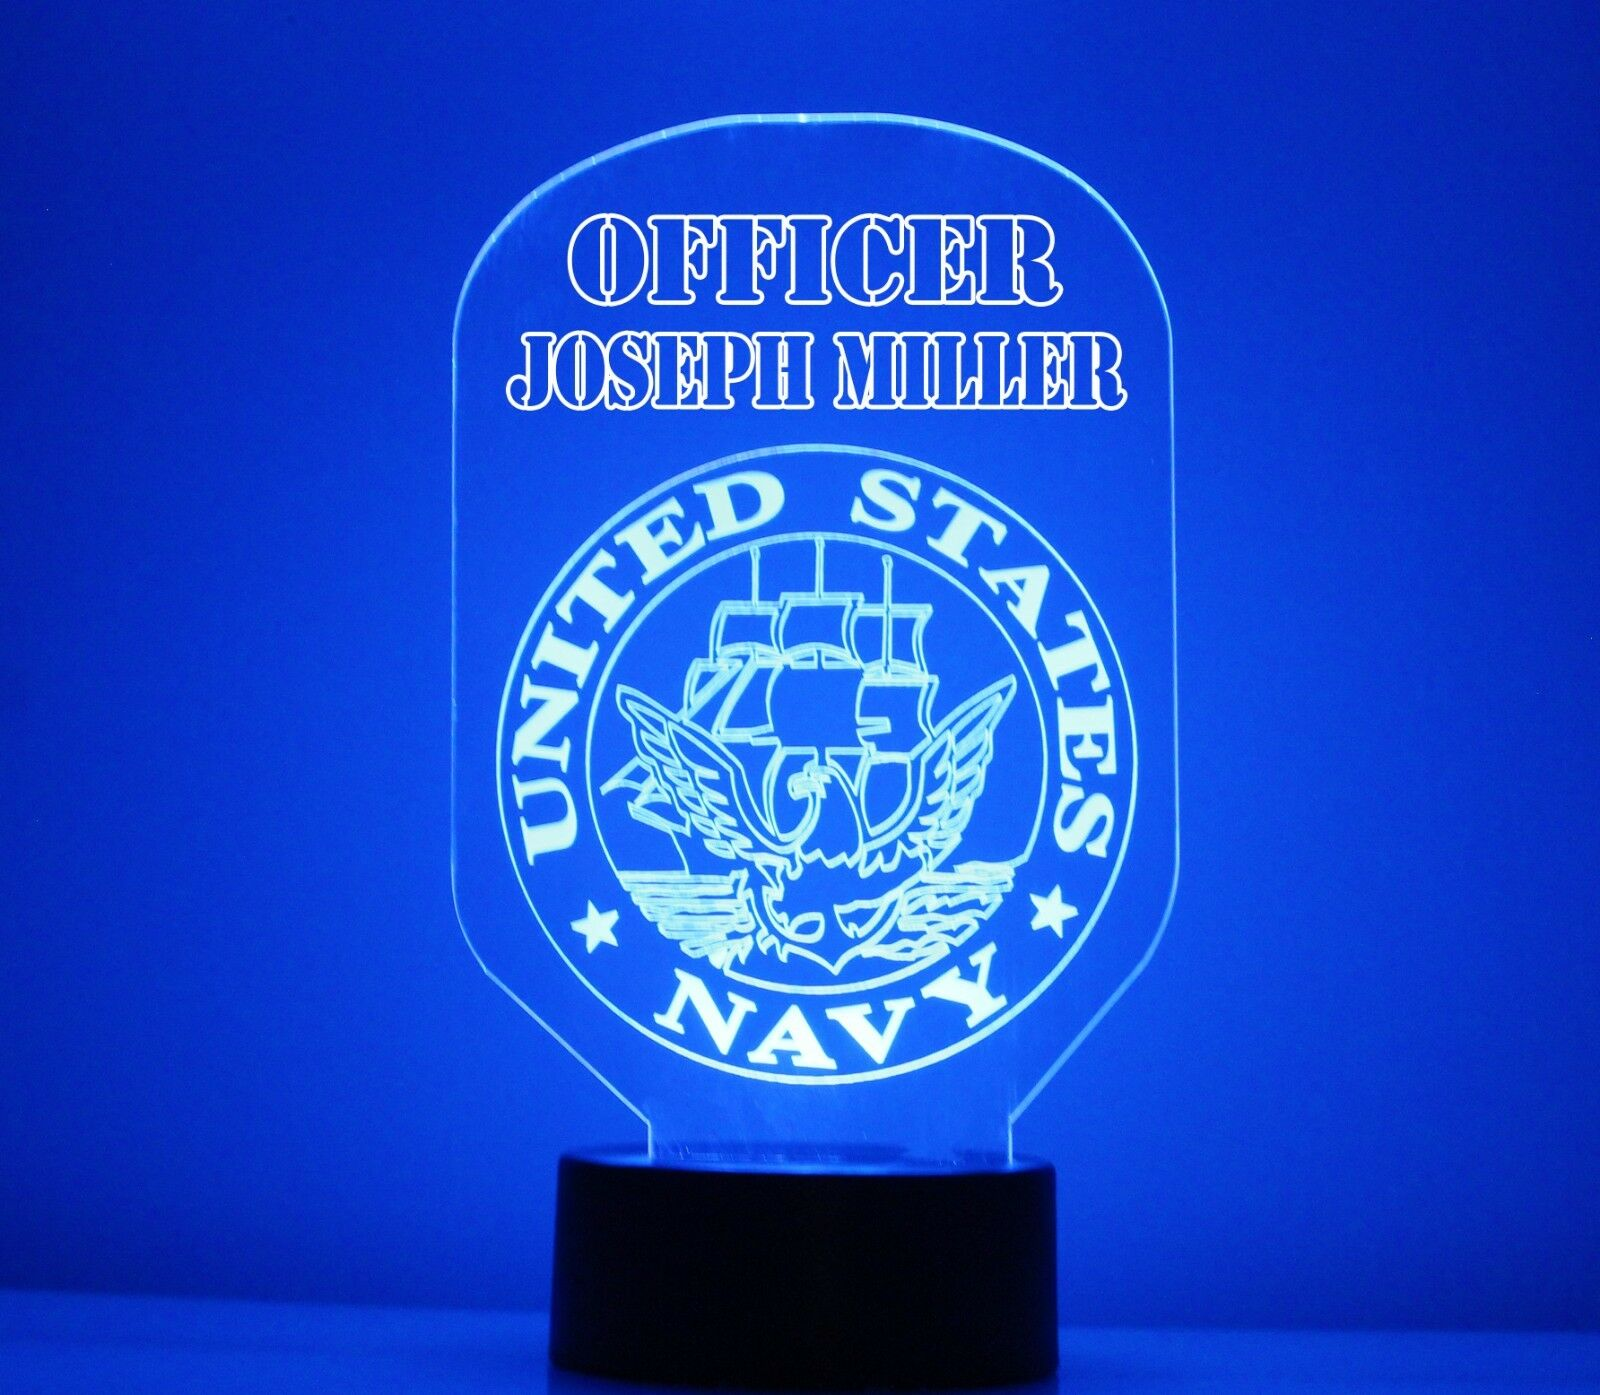 US Navy Lamp Night Light Table Lamp Free Personalize LED Wit